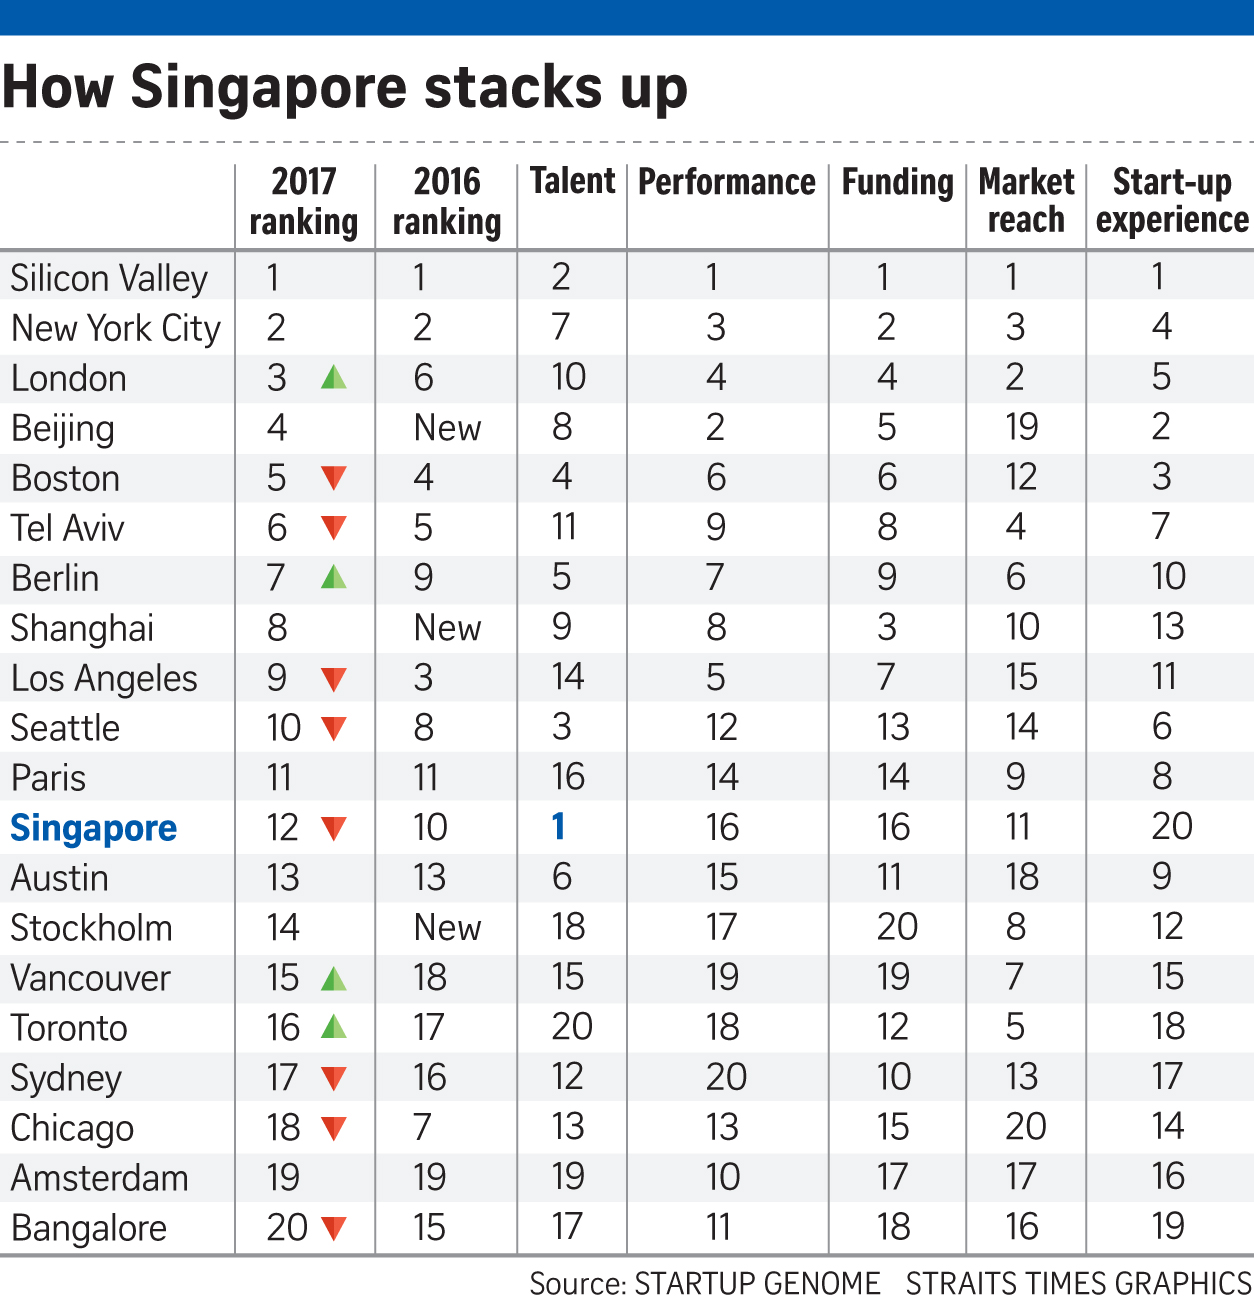 Singapore No.1 in 'talent', but last in 'start-up experience'?